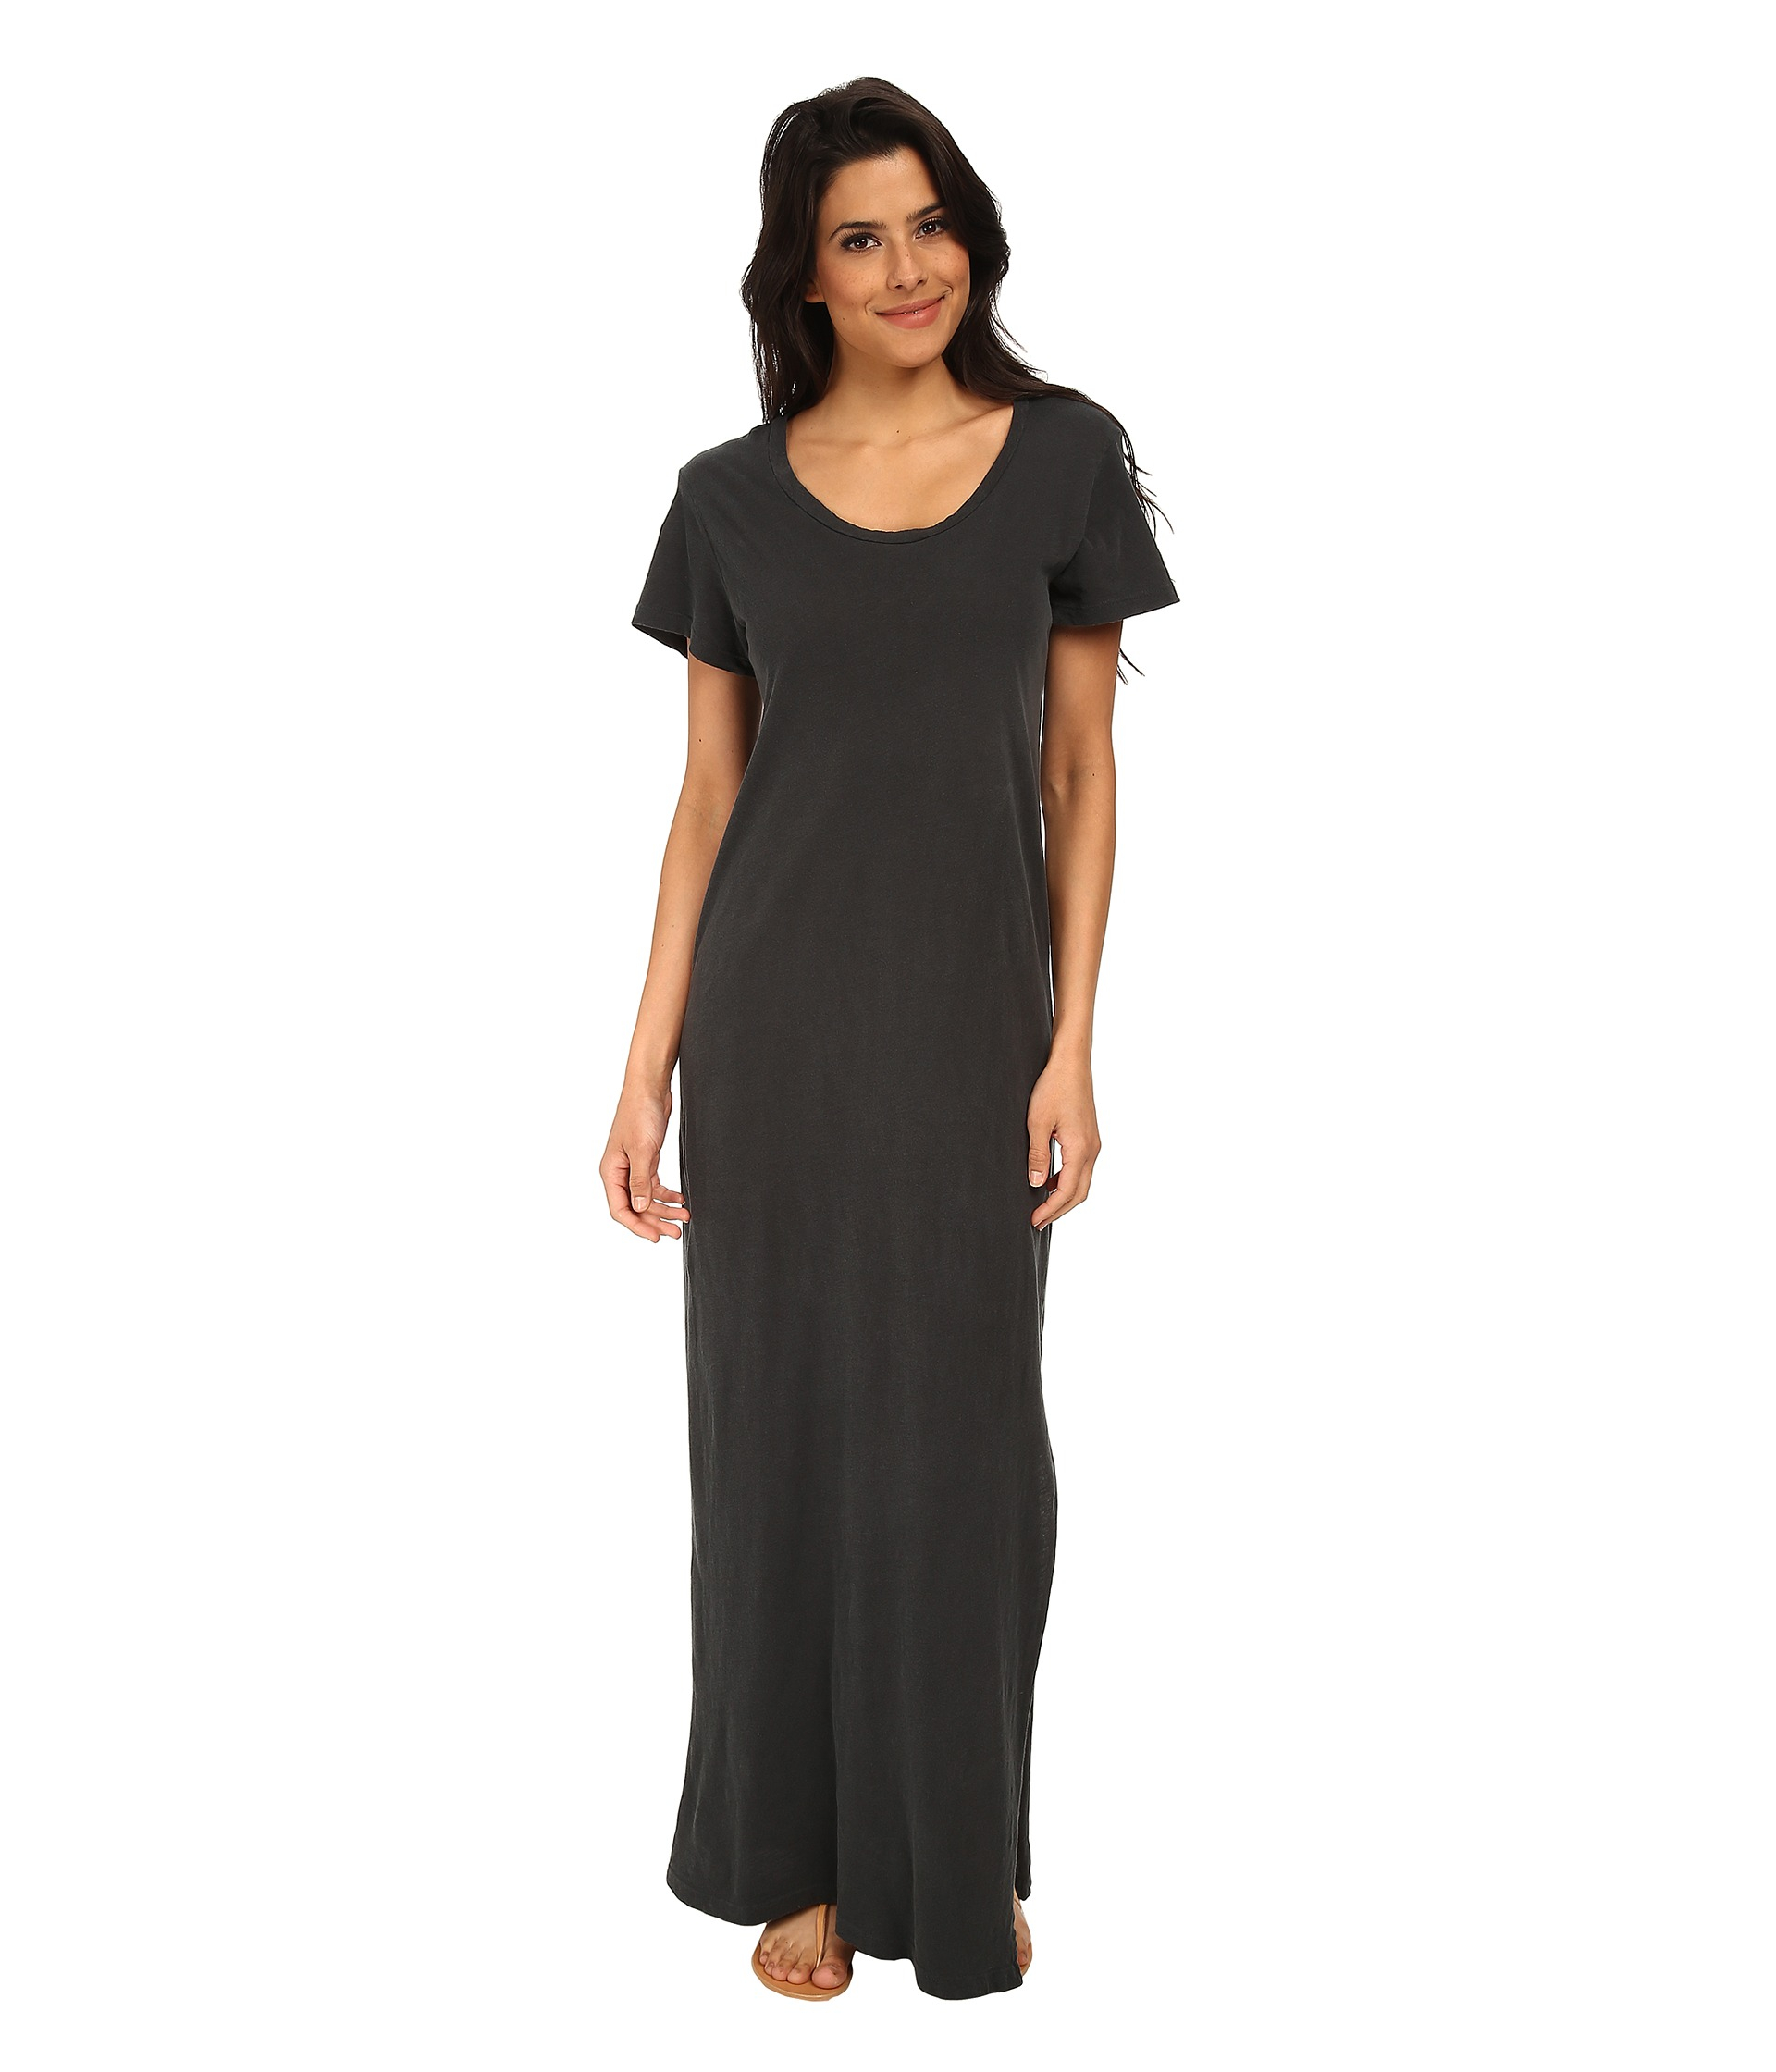 Black black t shirt maxi dress - Gallery Previously Sold At Zappos Women S T Shirt Dresses